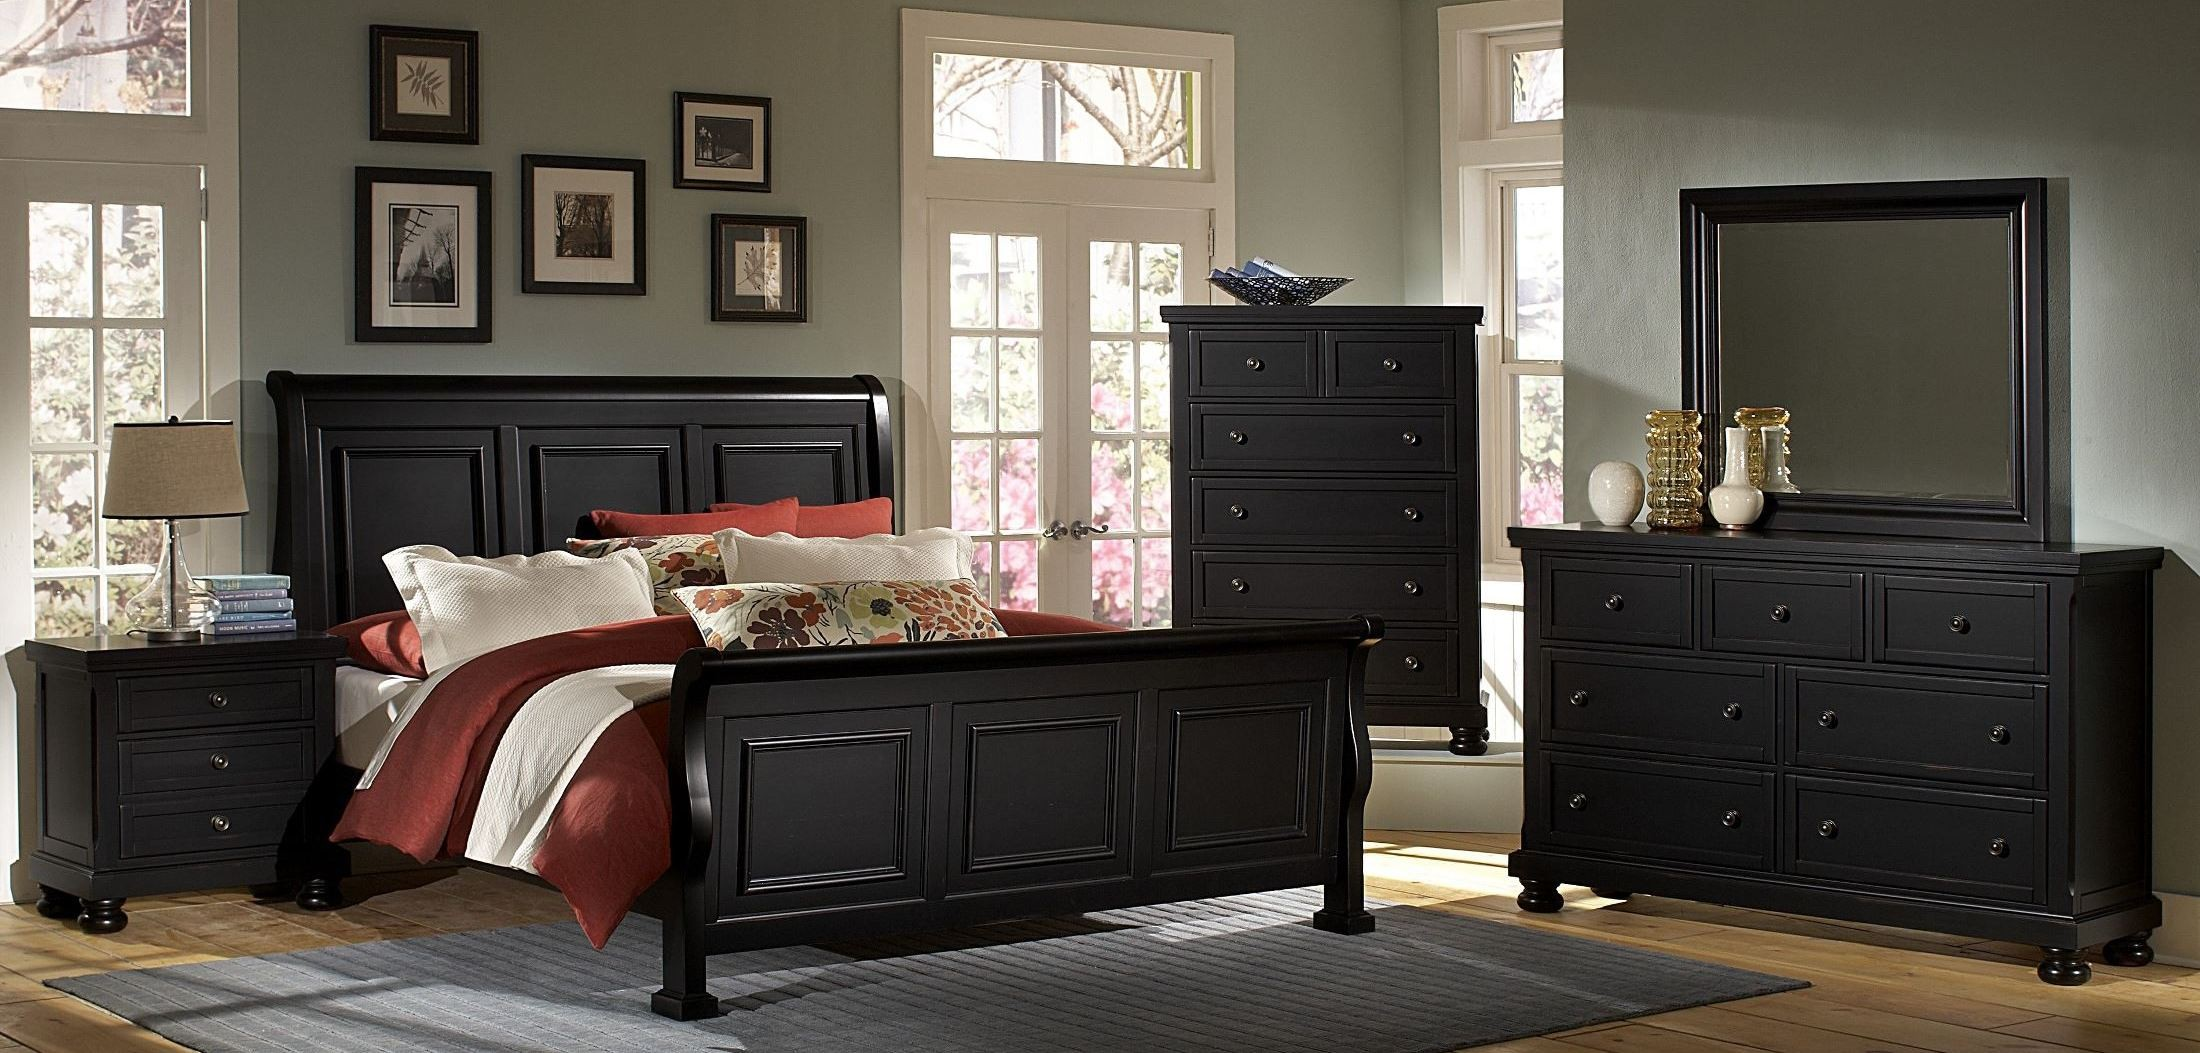 reflections ebony sleigh bedroom set from virginia house